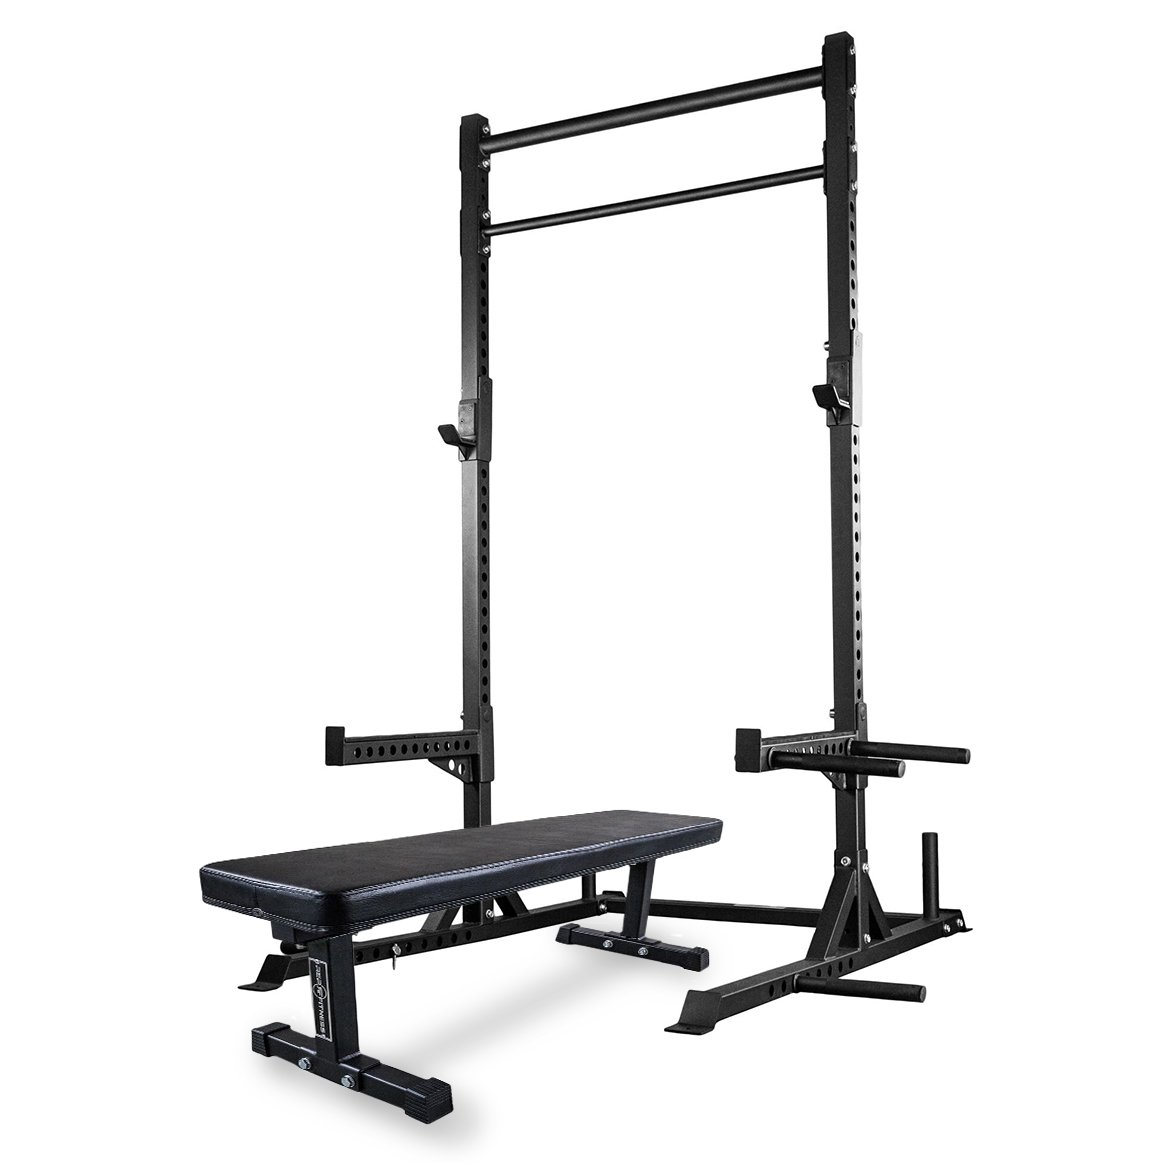 Rep Squat Rack with Pull Up Bar and Flat Bench - 110 in by Rep Fitness (Image #1)